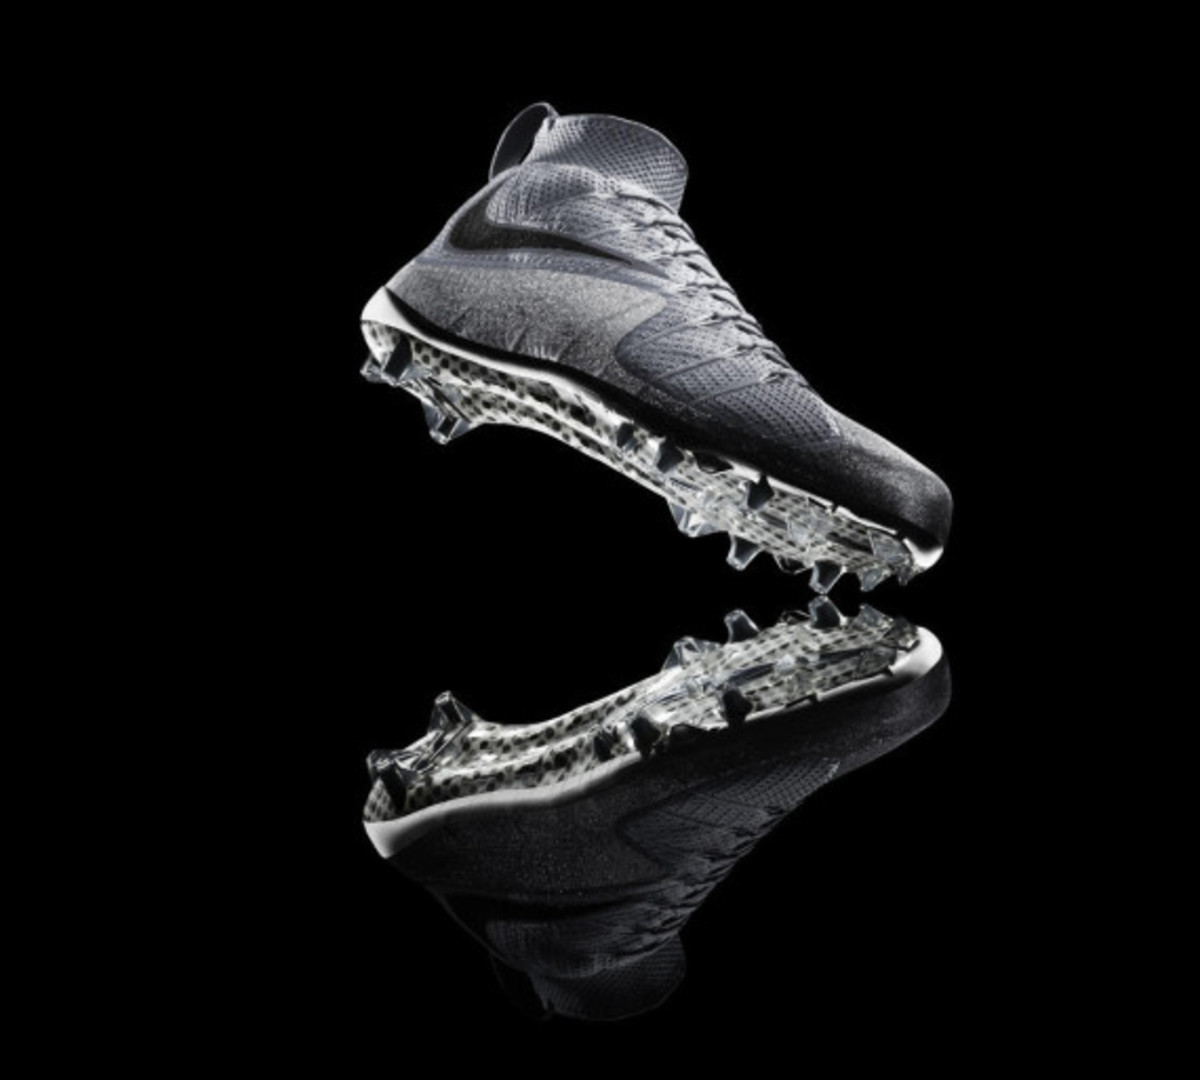 nike-vapor-untouchable-cleat-09